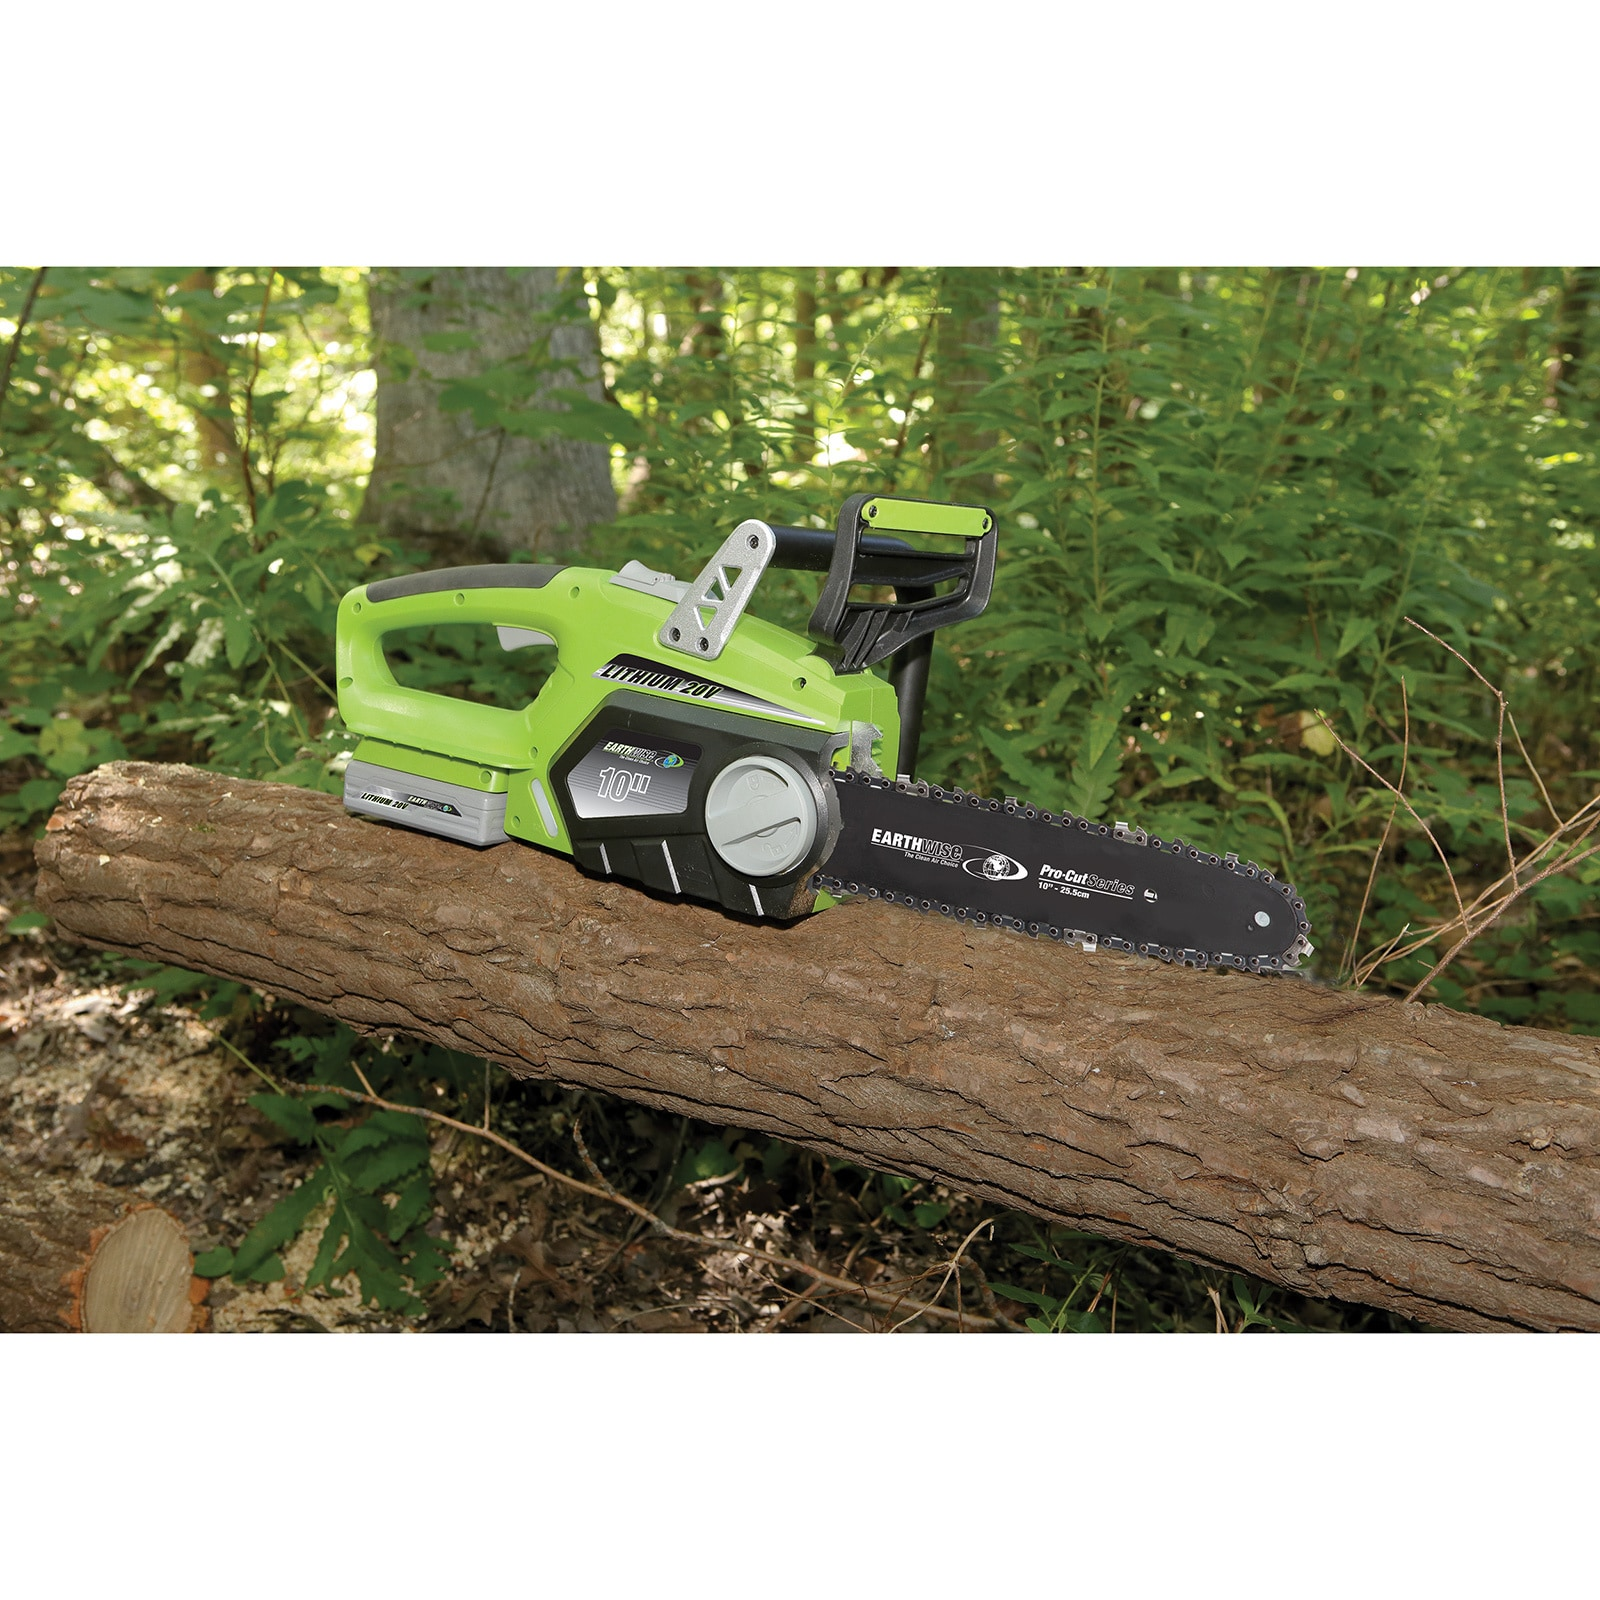 Earthwise 10 inch cordless 20 volt lithium ion chain saw free earthwise 10 inch cordless 20 volt lithium ion chain saw free shipping today overstock 16848944 greentooth